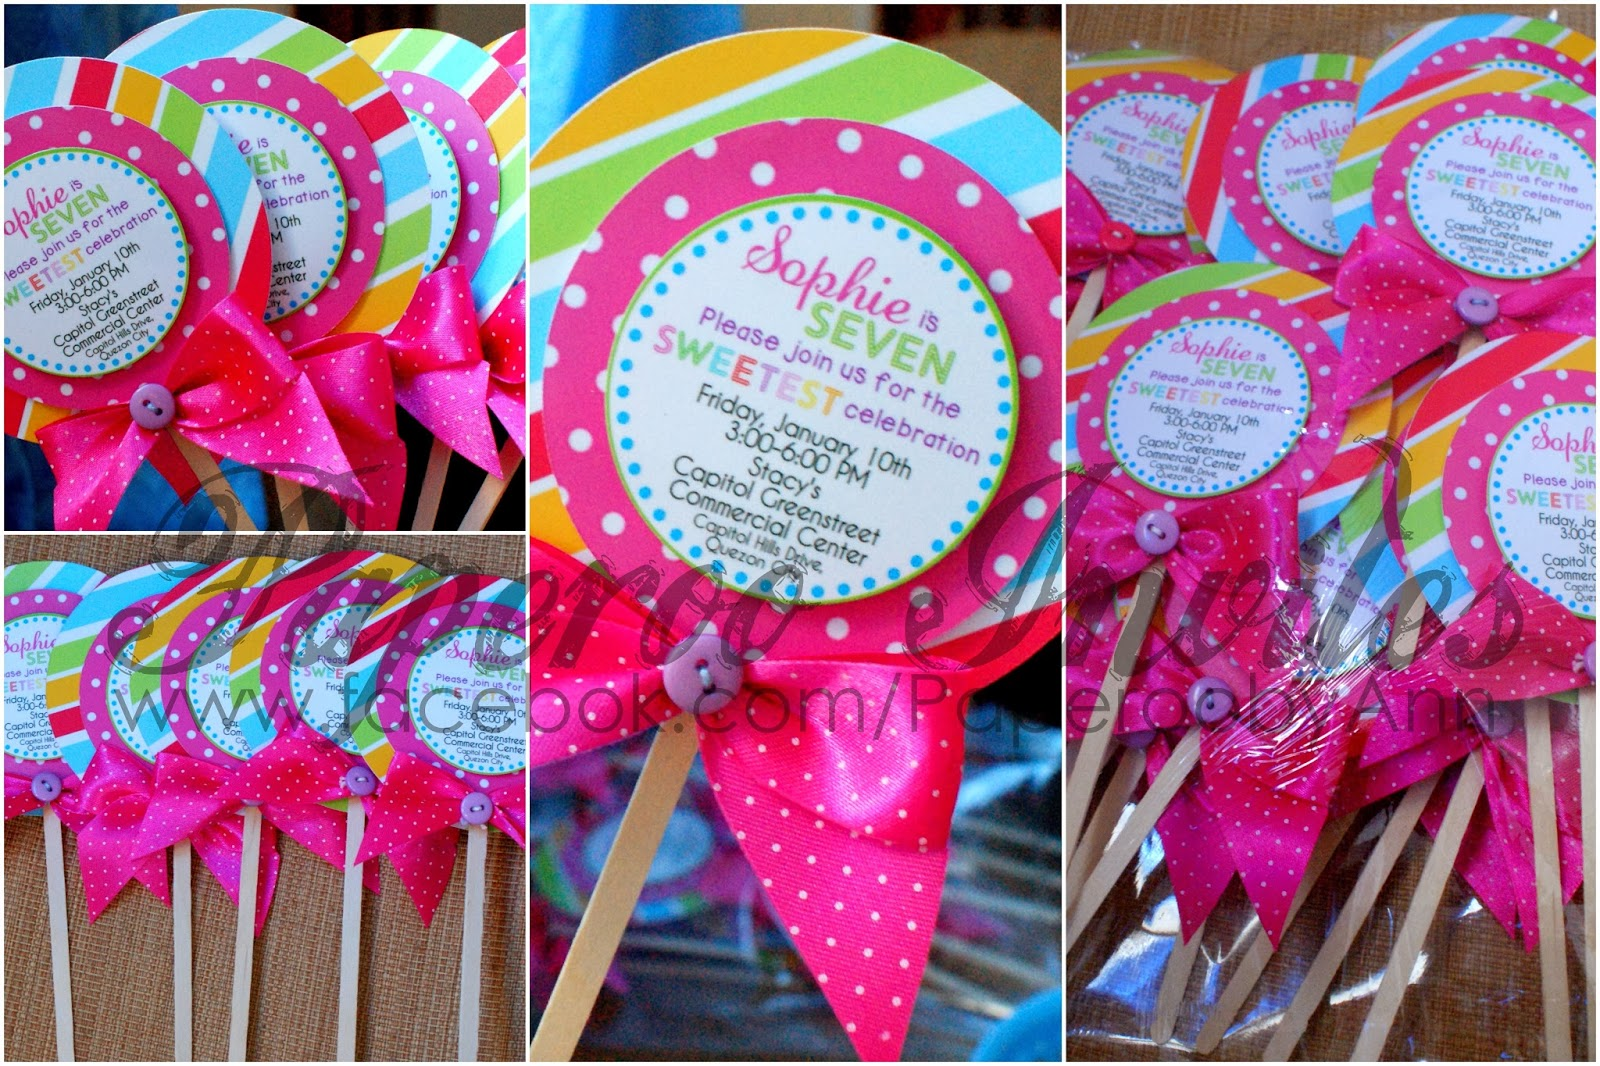 Paperoo Invites Lollipopshaped Invitations for Candyland theme party